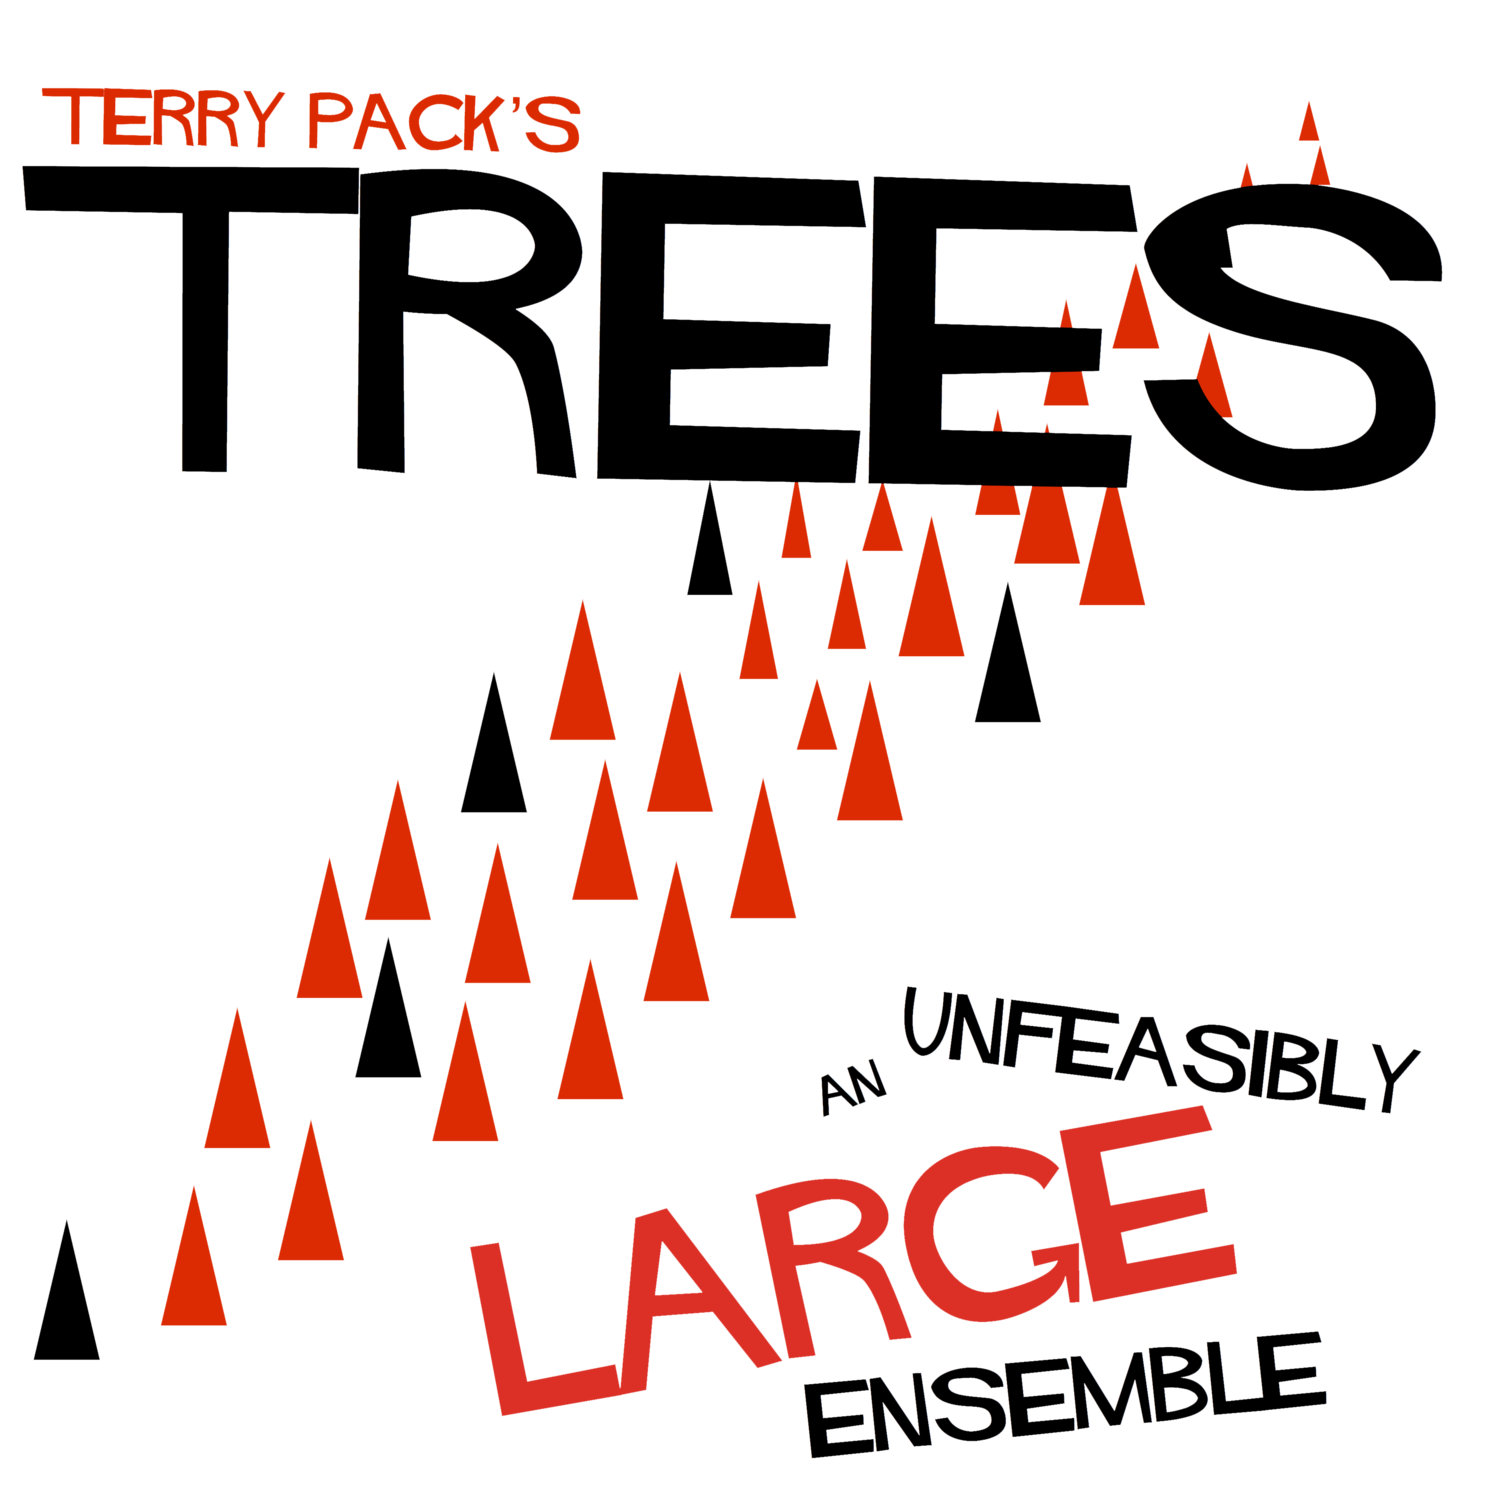 TERRY PACK'S TREES